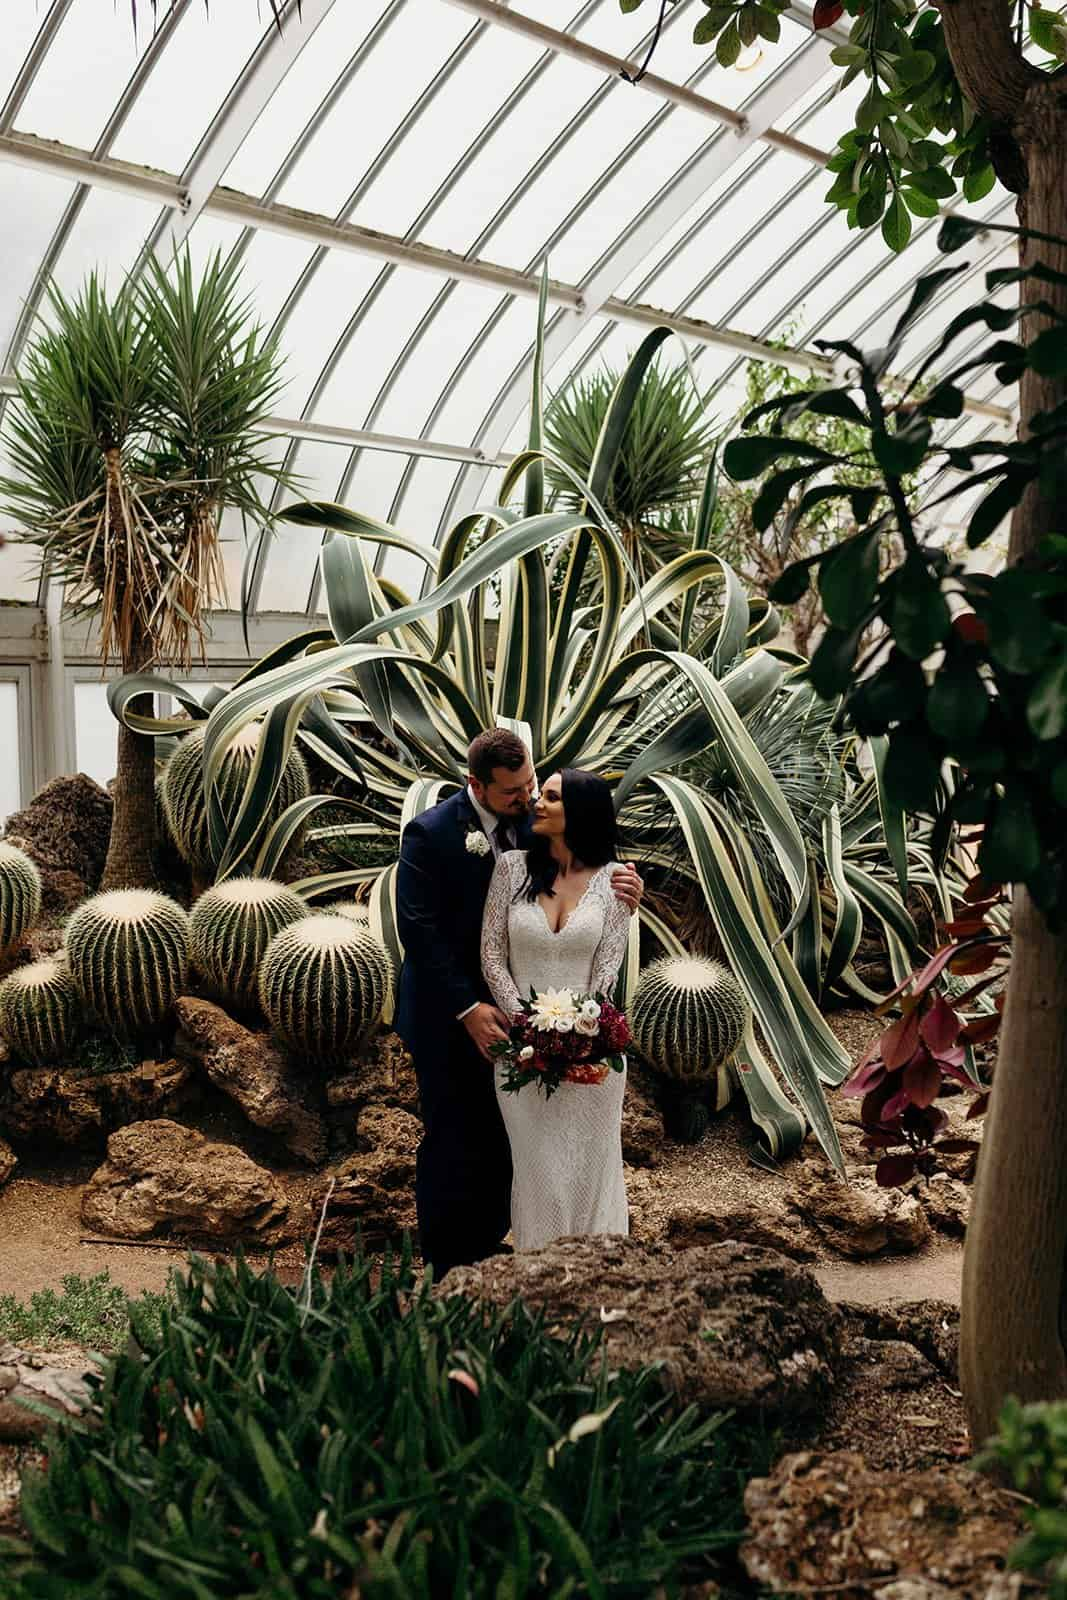 Bride and Groom in the desert room during a Phipps conservatory wedding